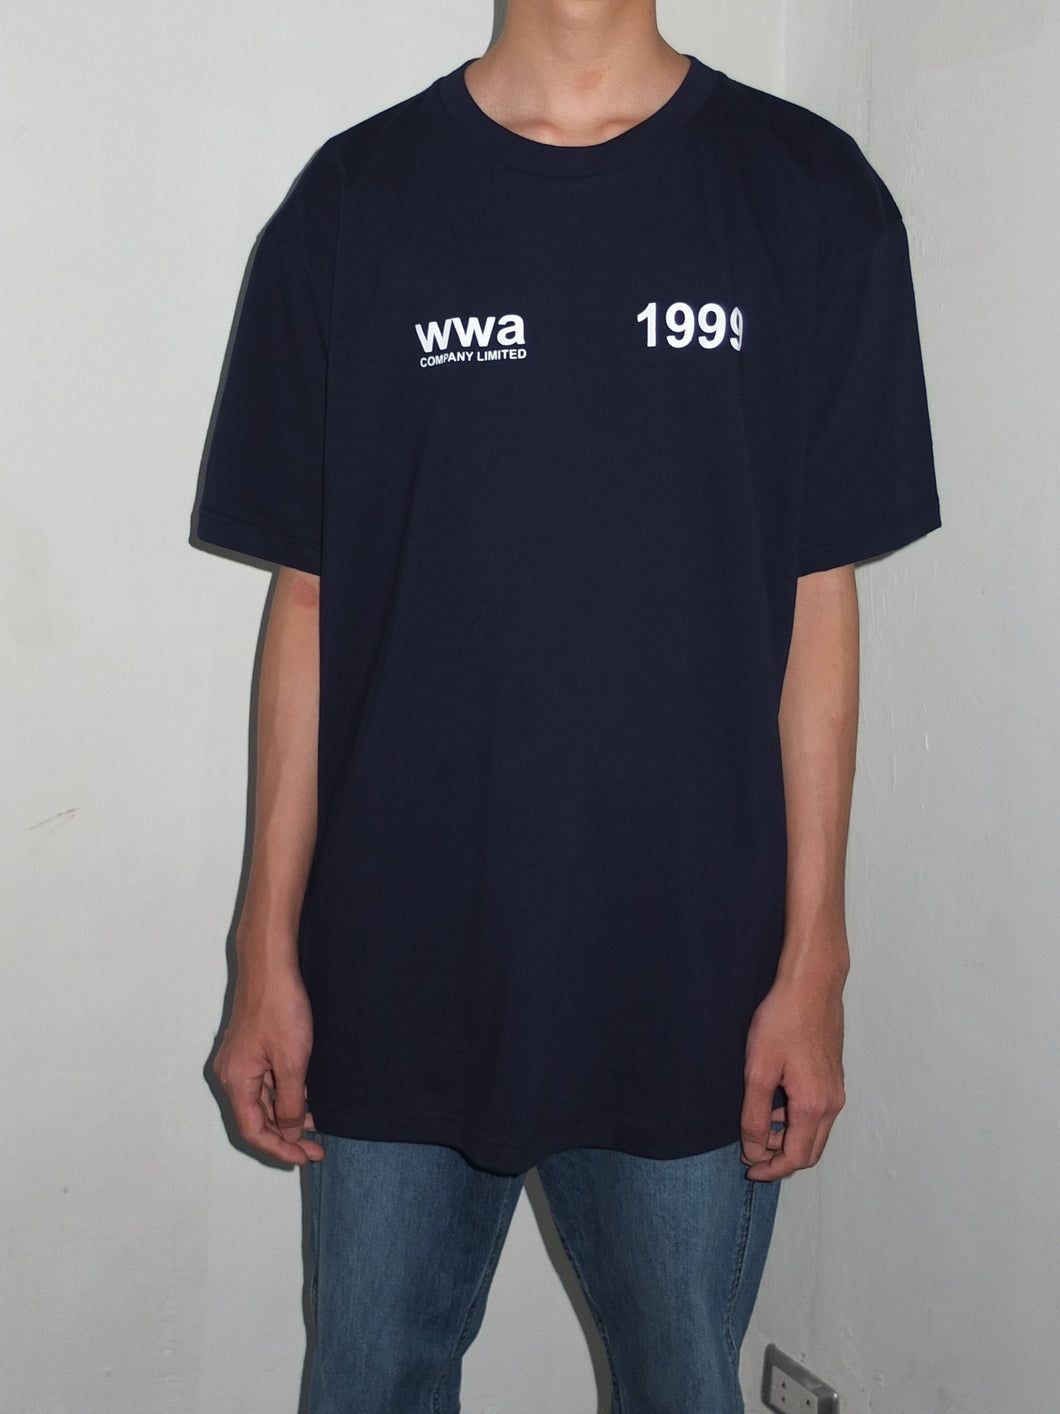 1999 Navy Blue T-shirt